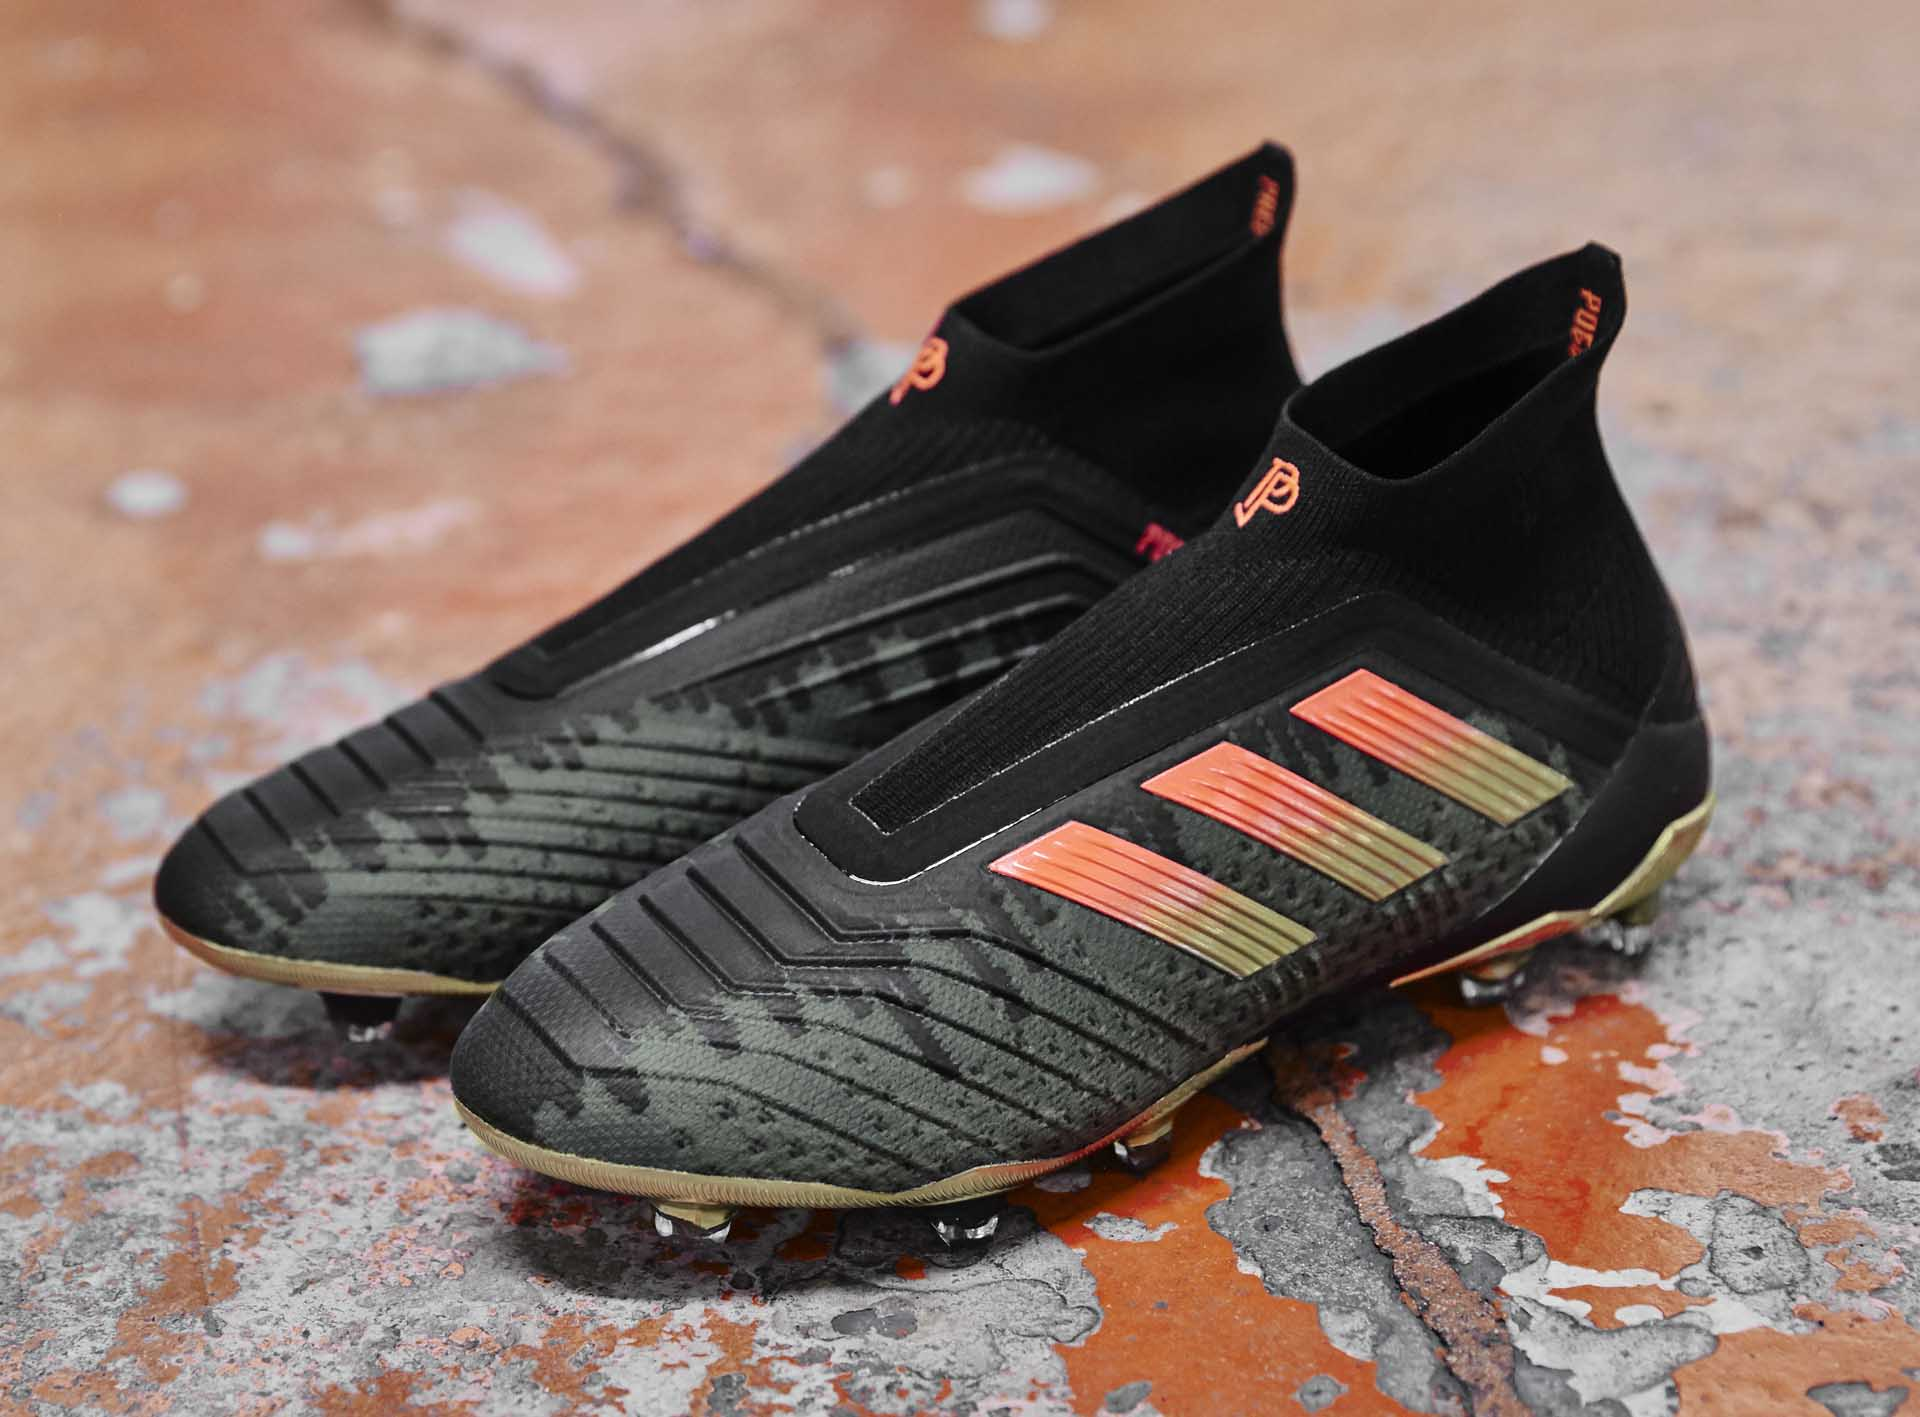 d93f68d40 adidas Launch Paul Pogba Season 4 Predator 18+ - SoccerBible